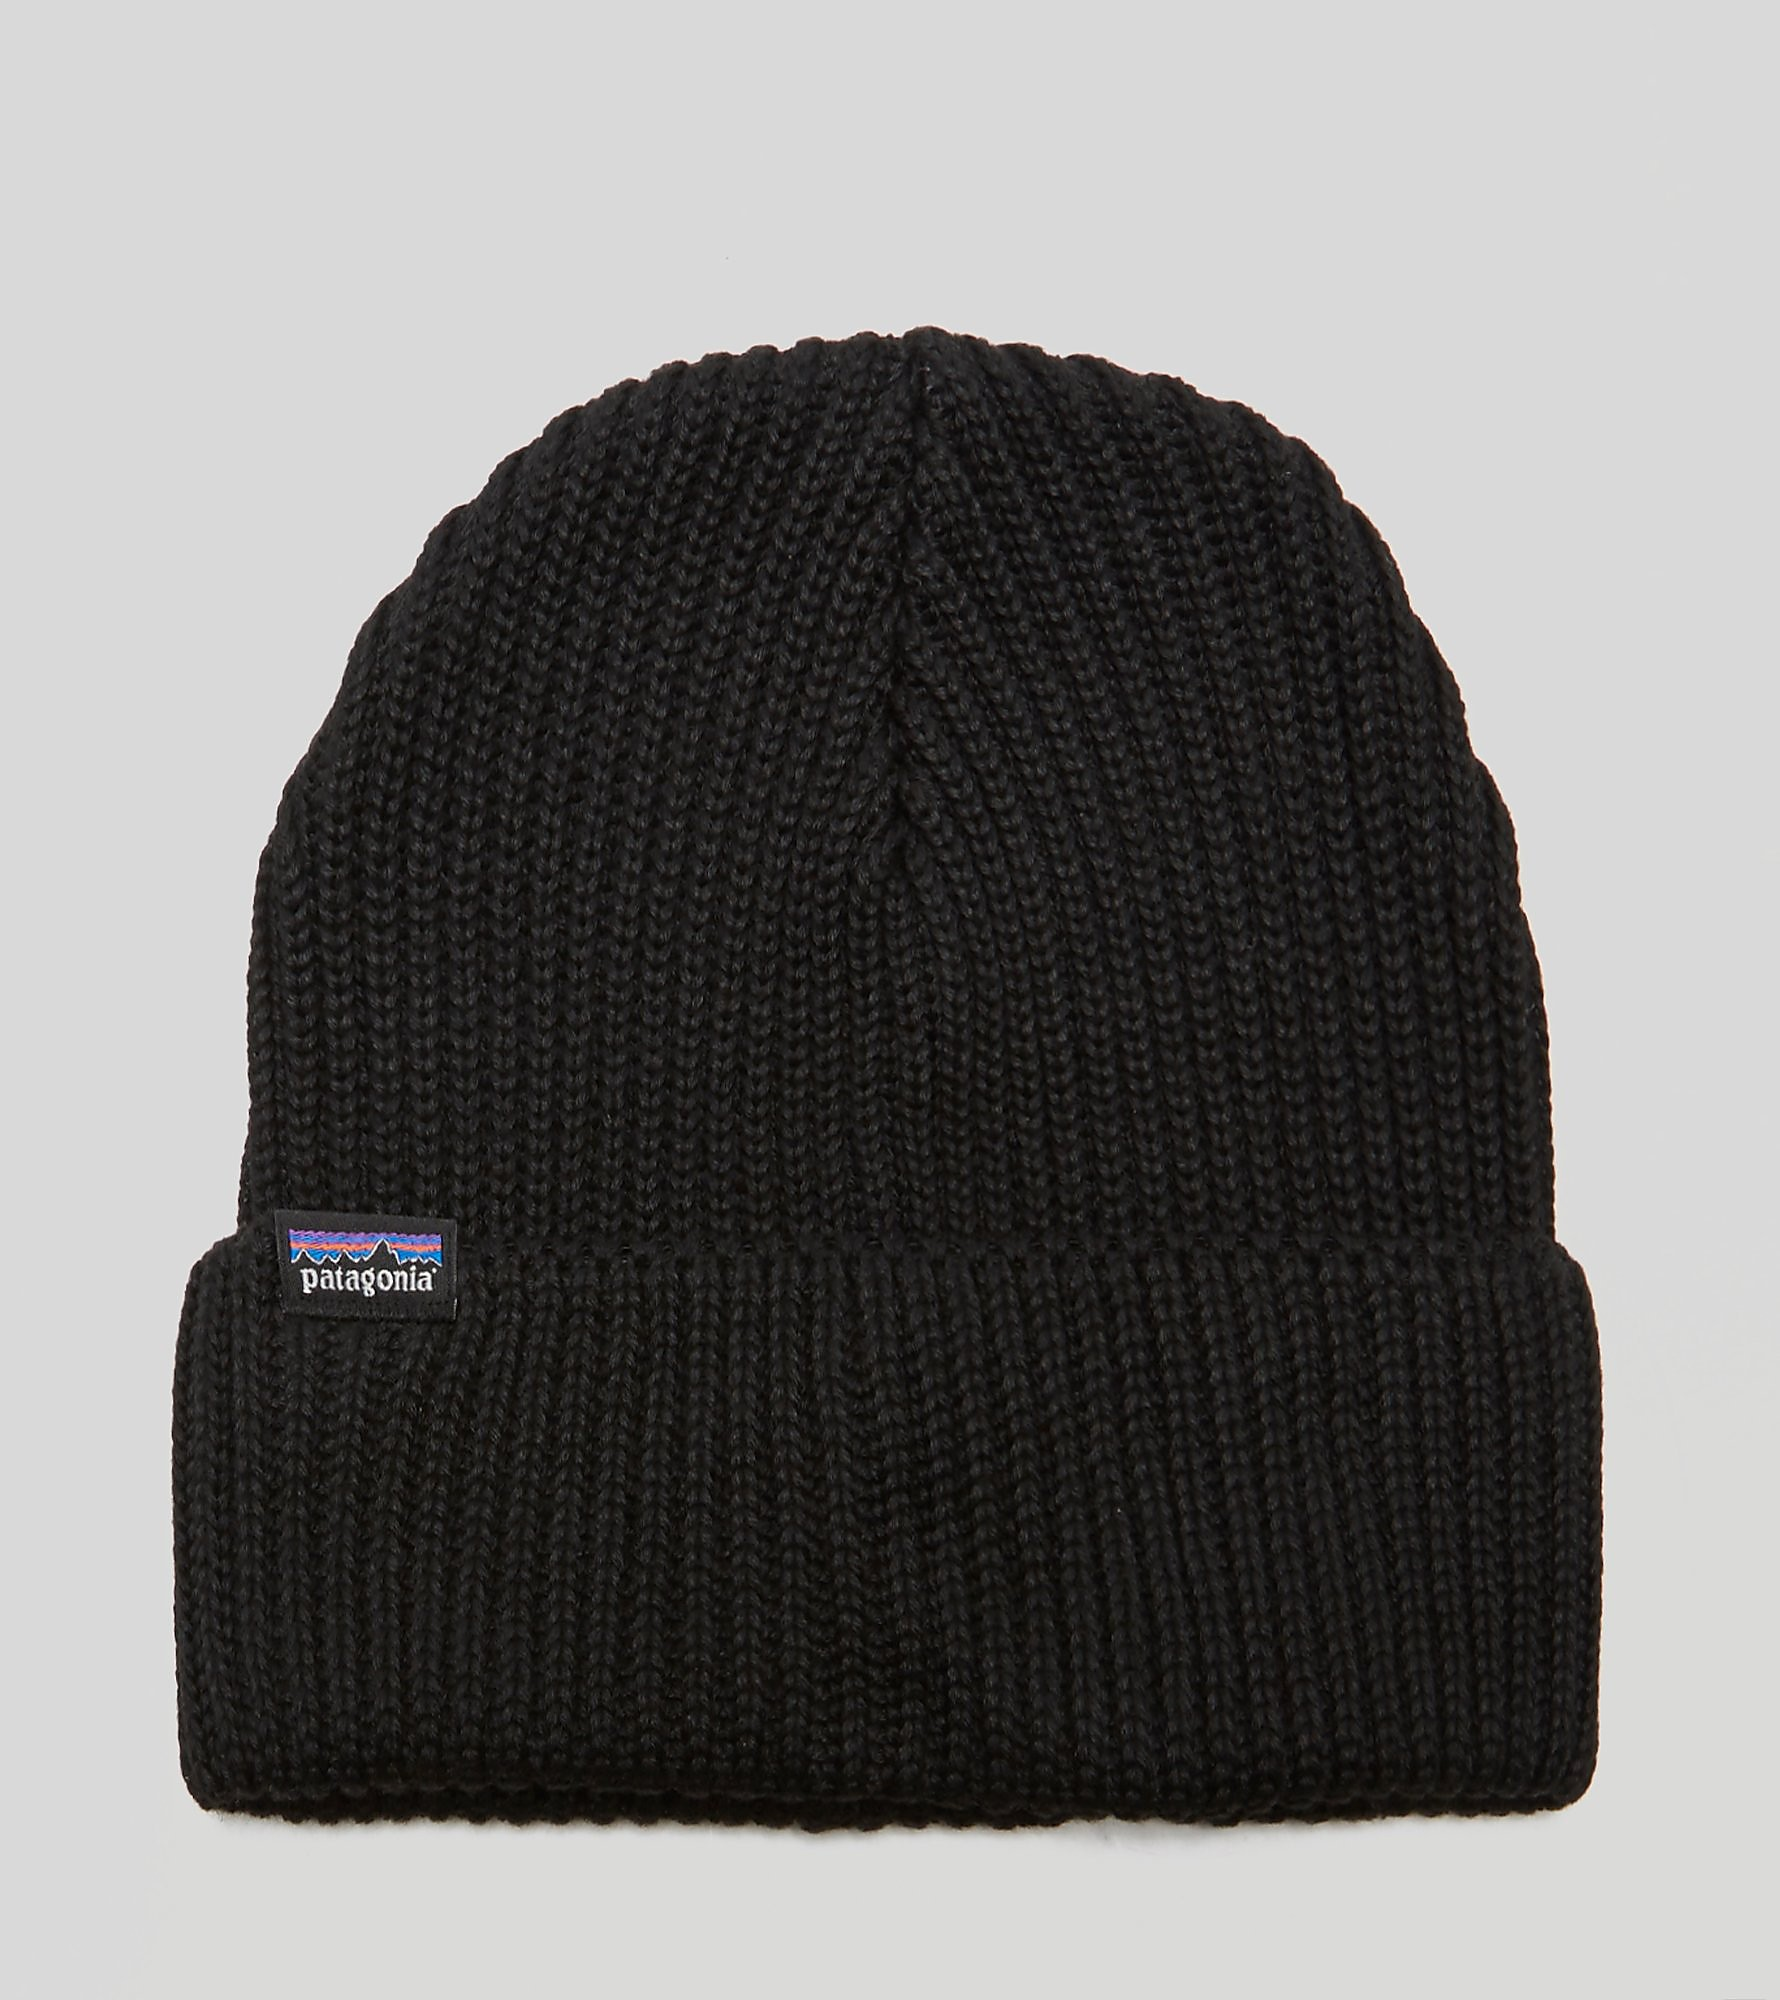 Patagonia Fisherman Beanie Hat